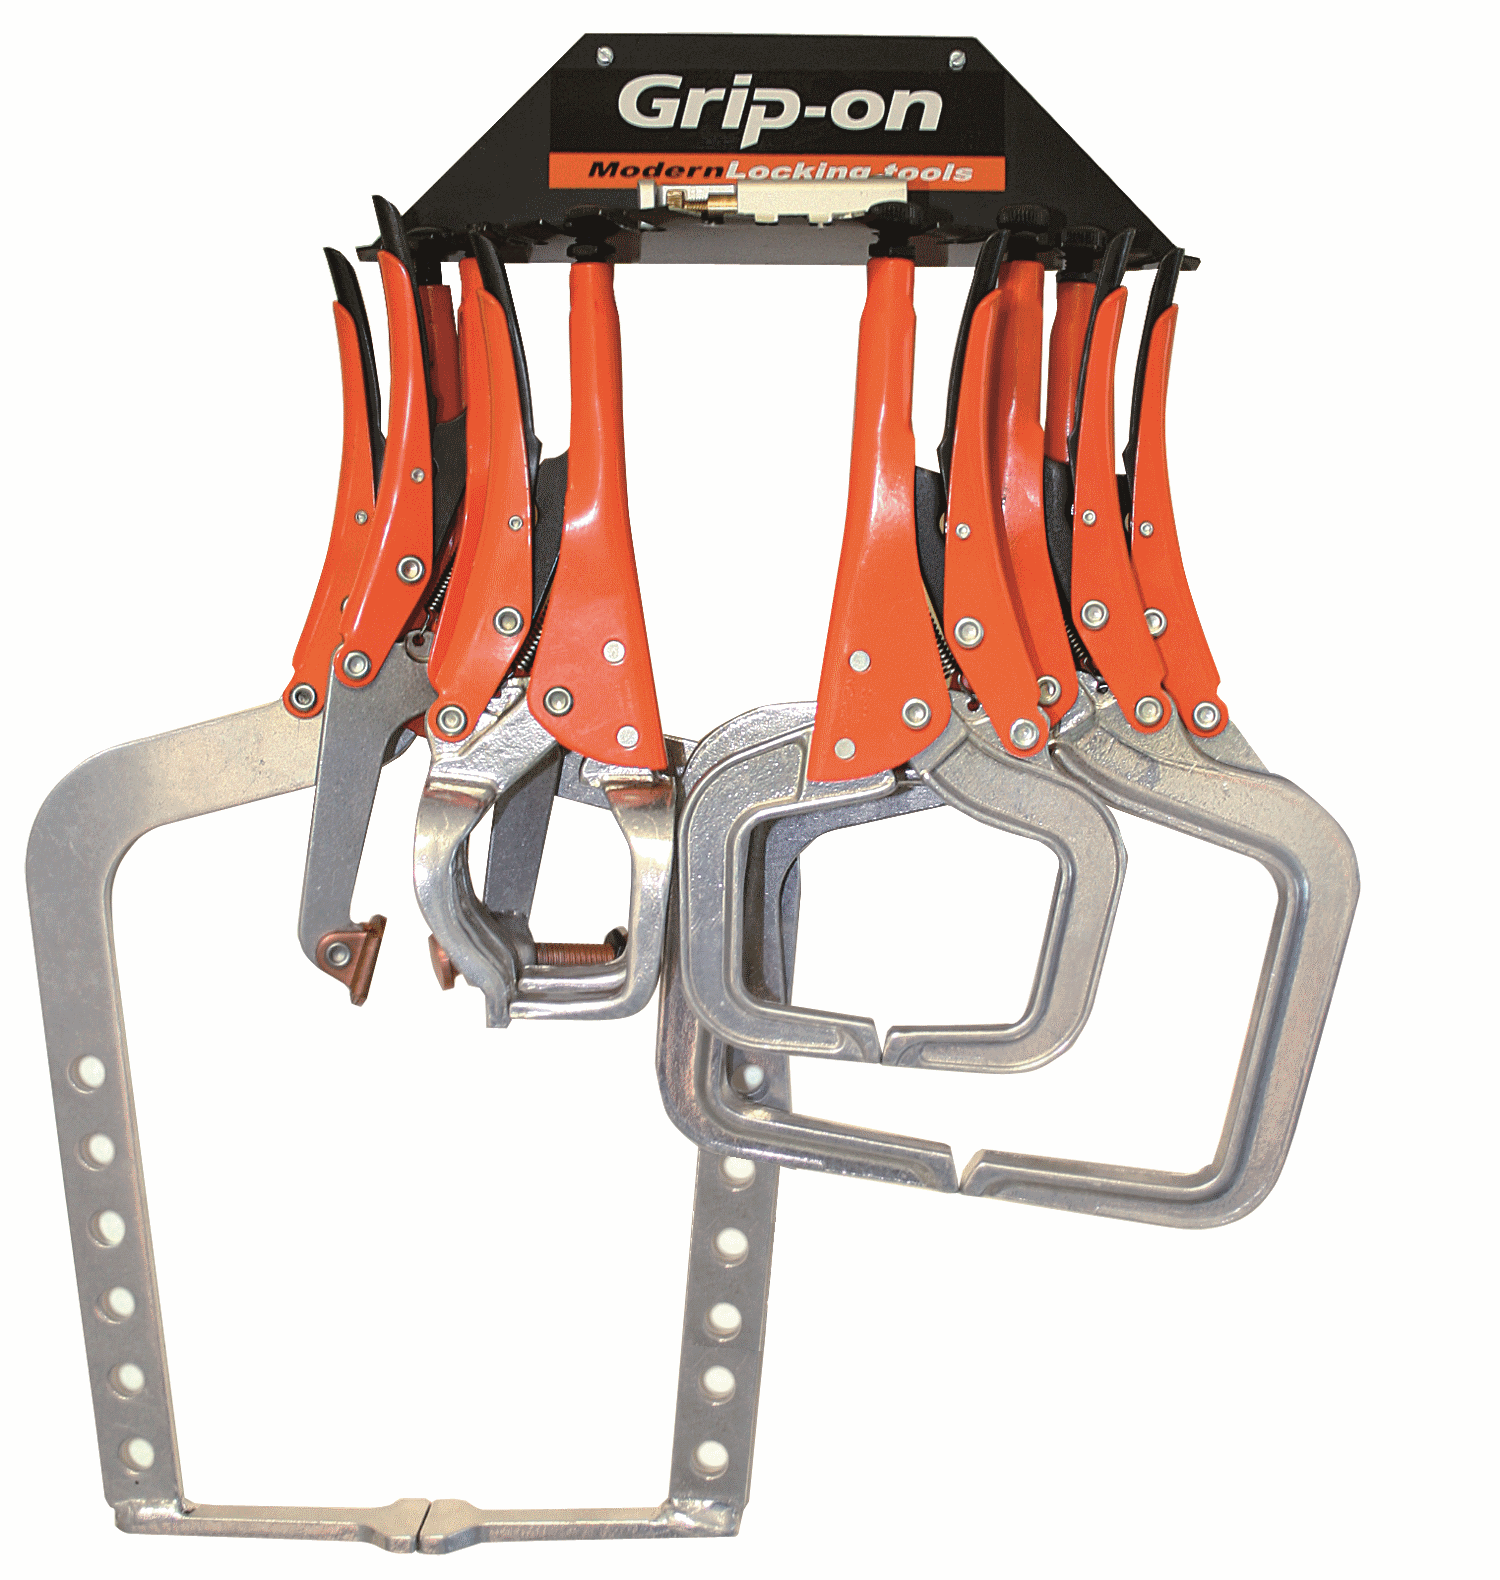 GRIP-ON Aluminium Clamp Sats, 10 stk.